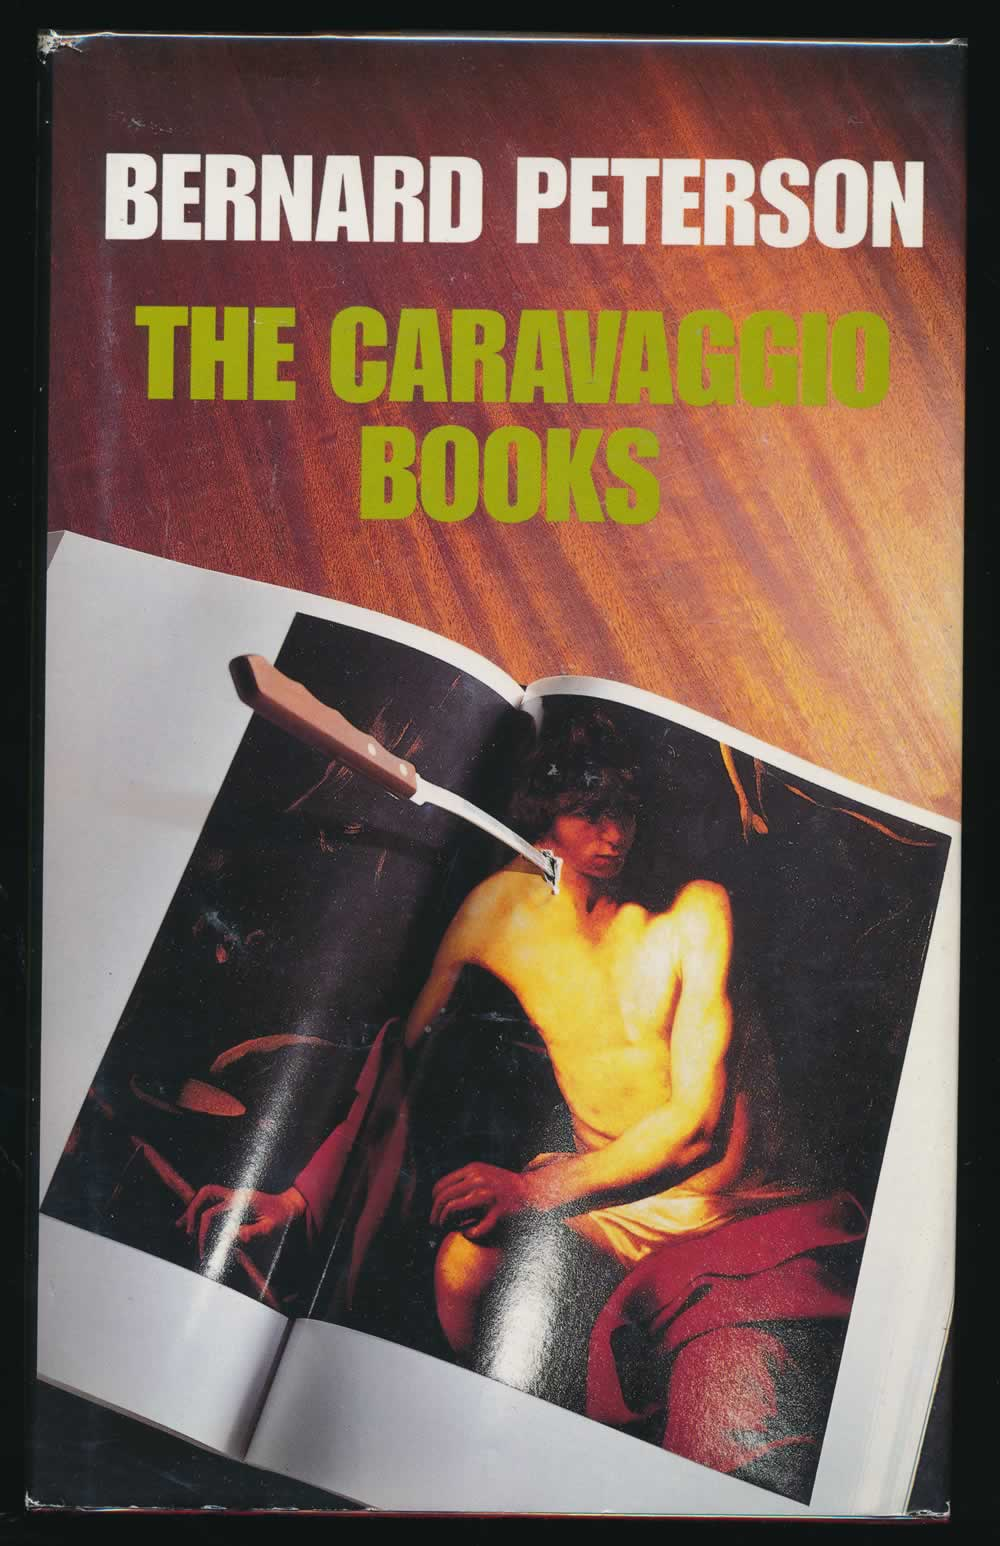 The Caravaggio books